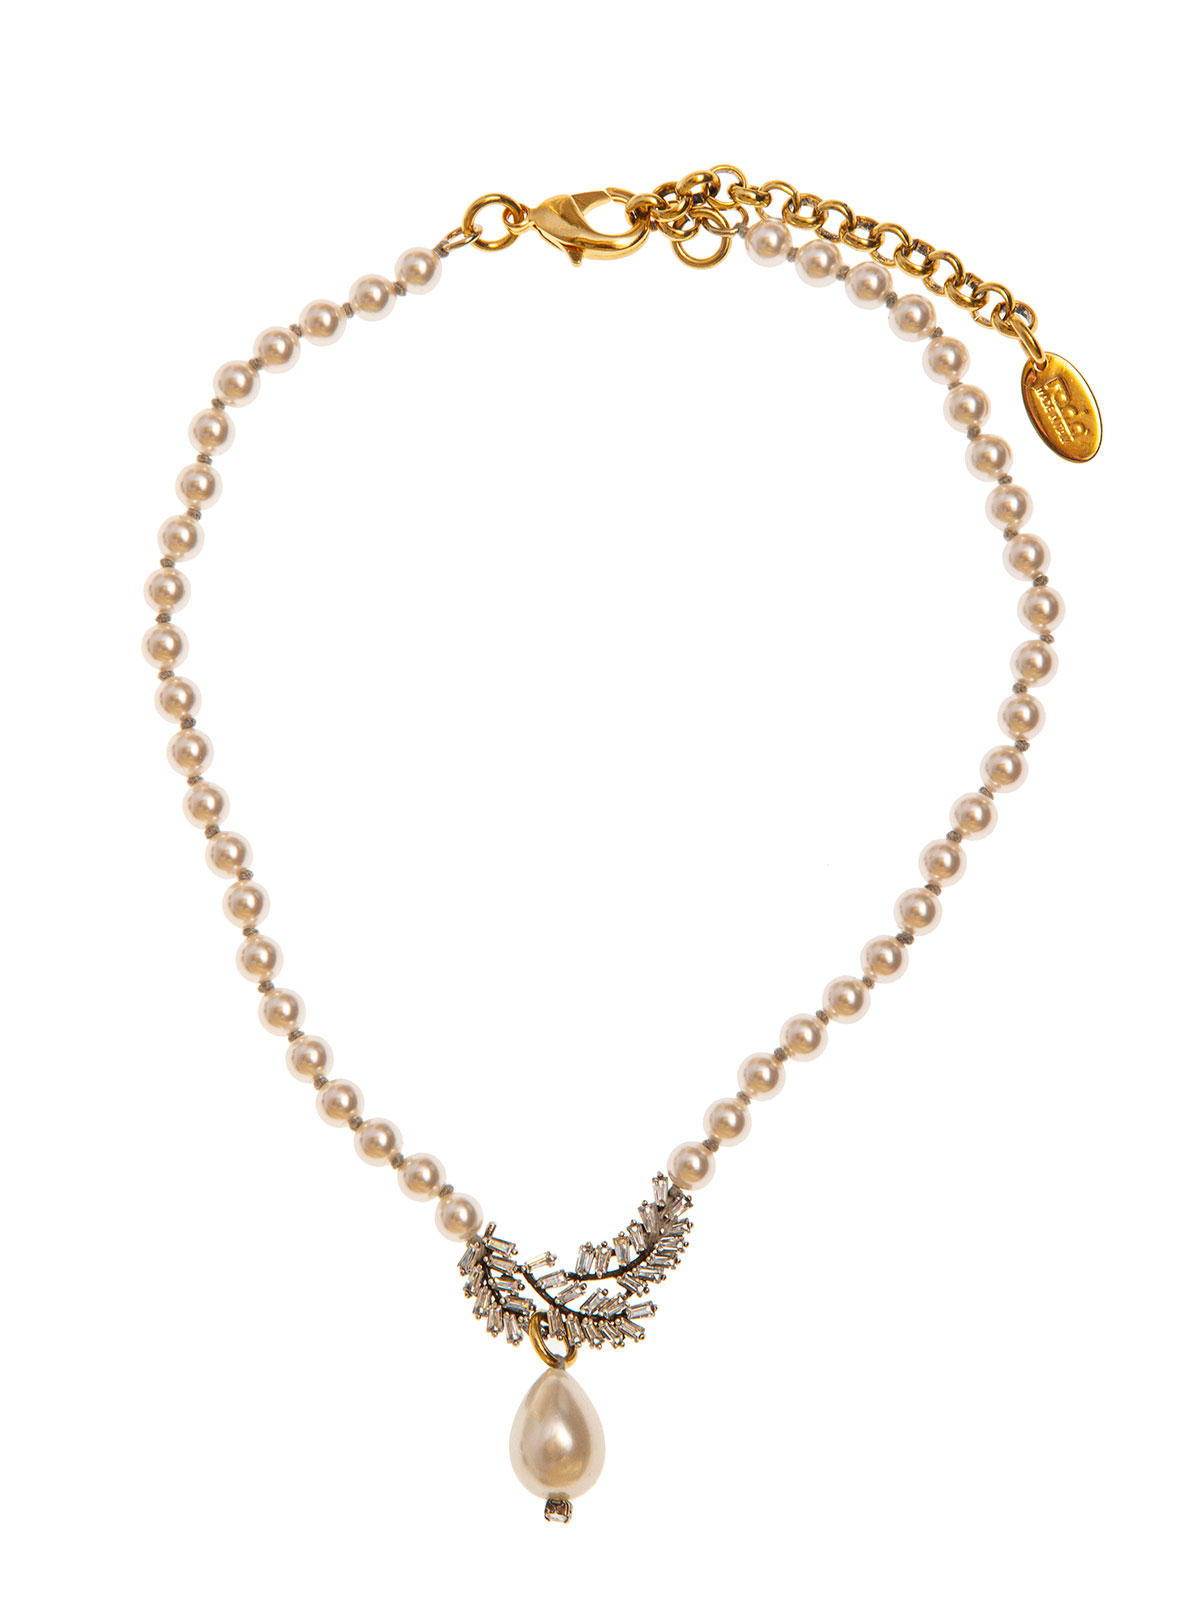 Pearl necklace with crystal leaves decoration